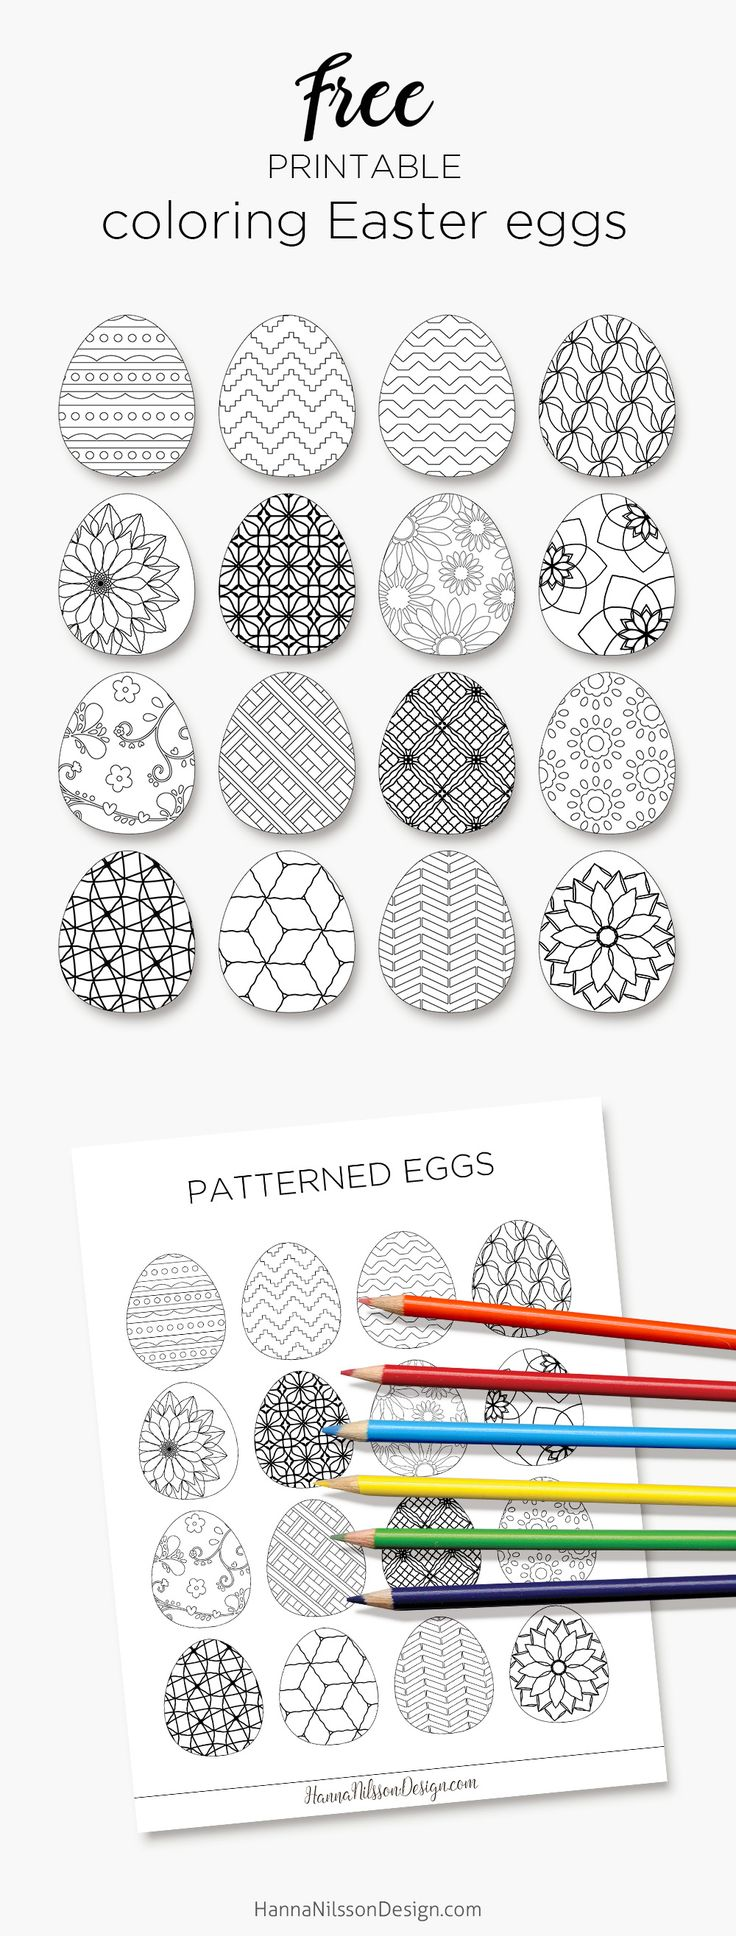 Coloring Easter eggs to decorate with for the Easter weekend - print, color, cut out and hang as decoration. Last minute Easter craft.